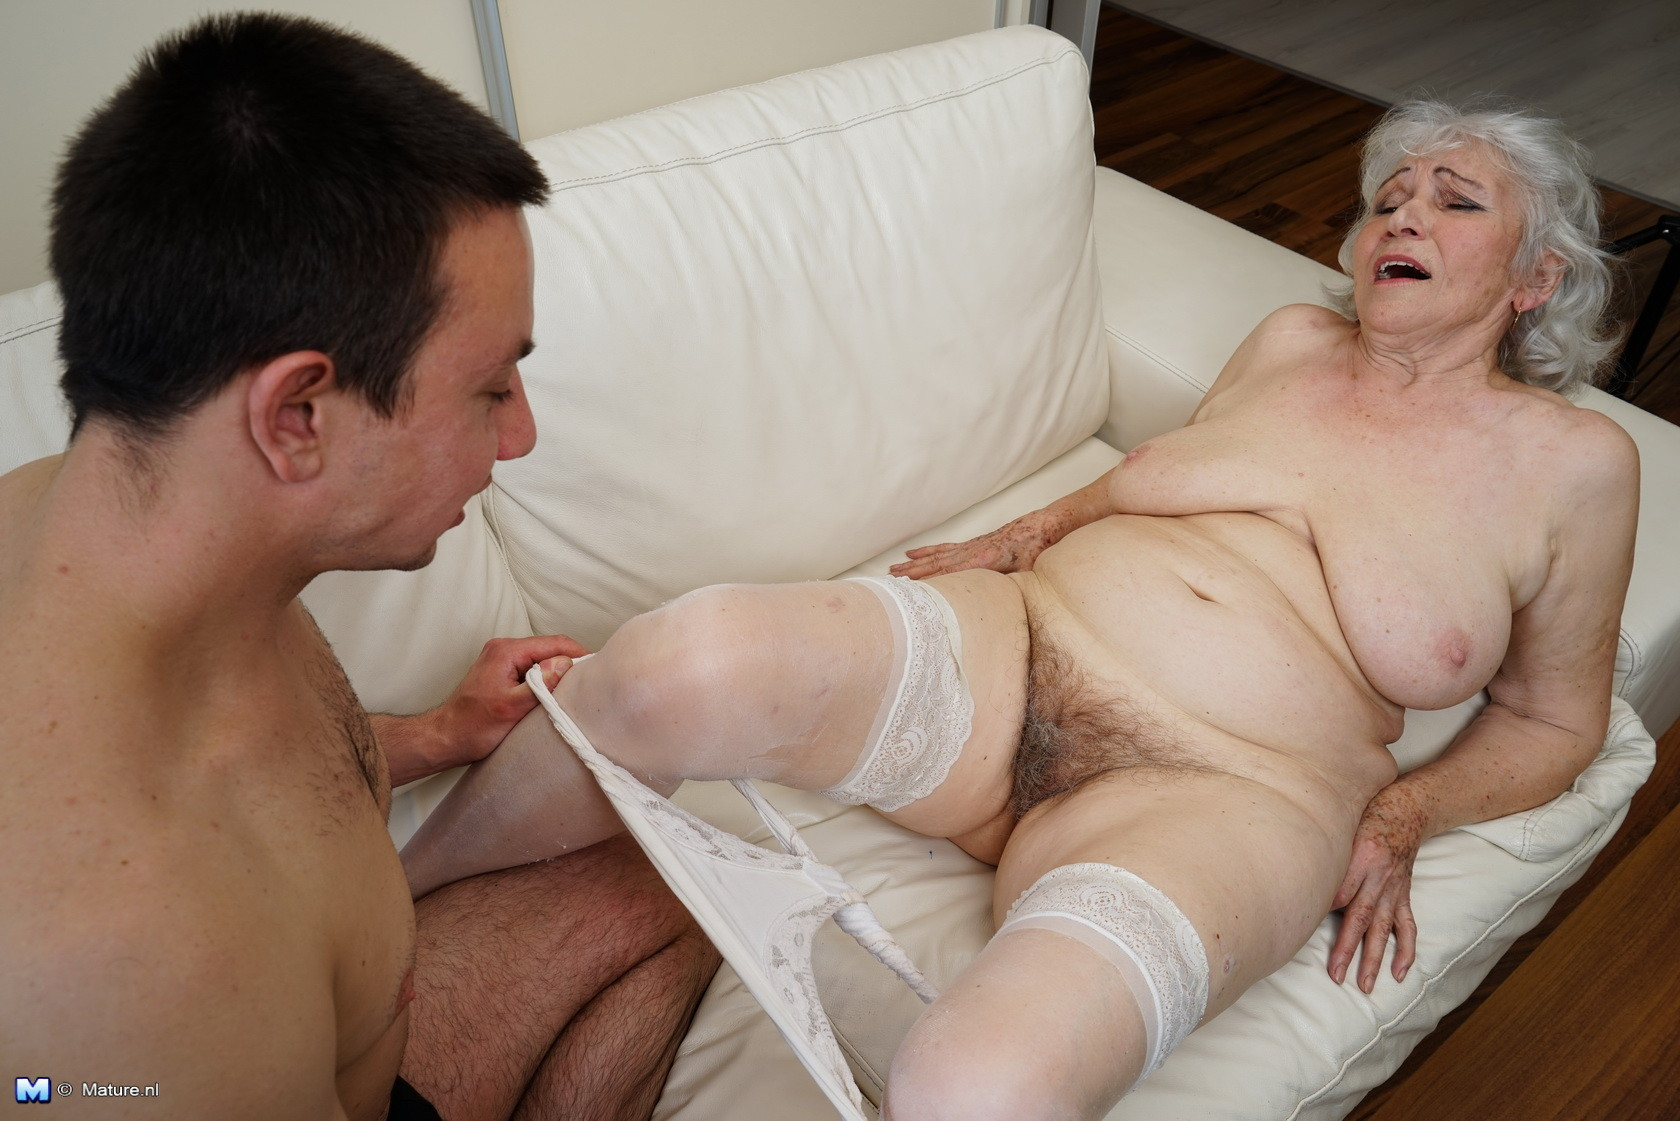 Granny and boy porn